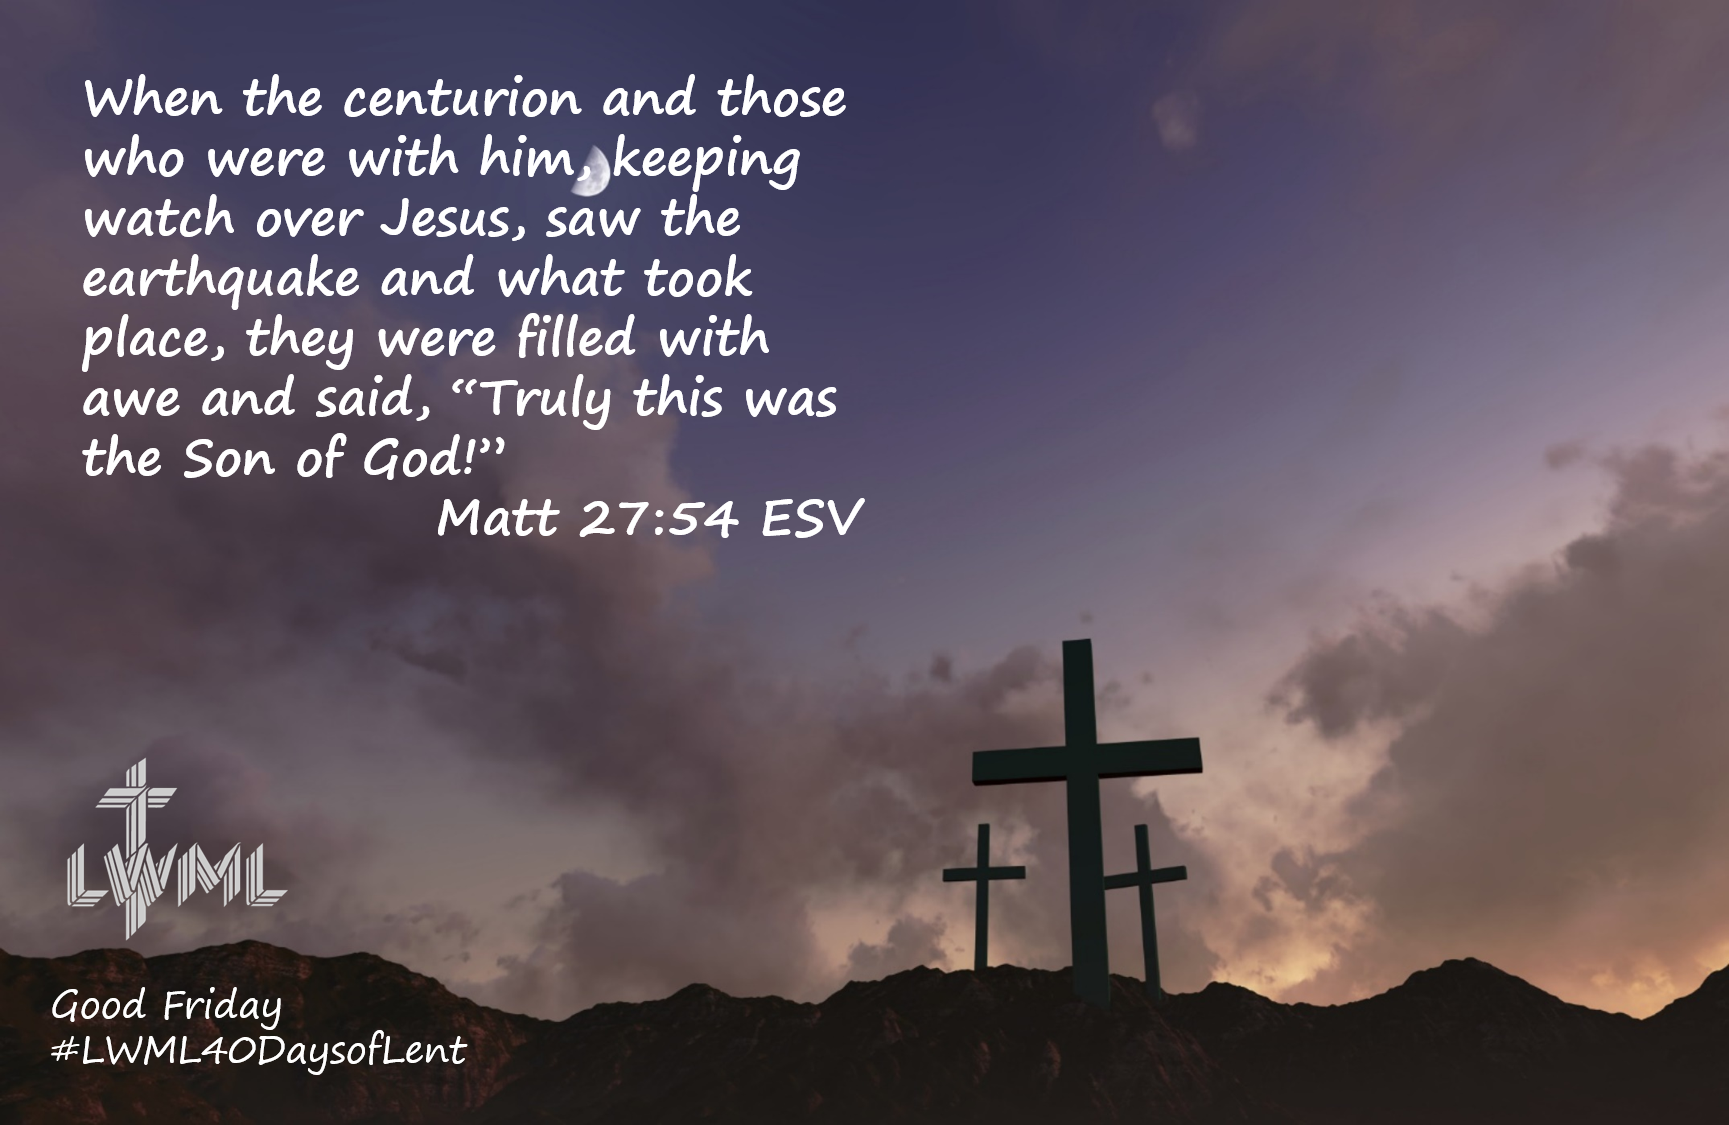 Good Friday Quotes From The Bible: Bible, Verses And